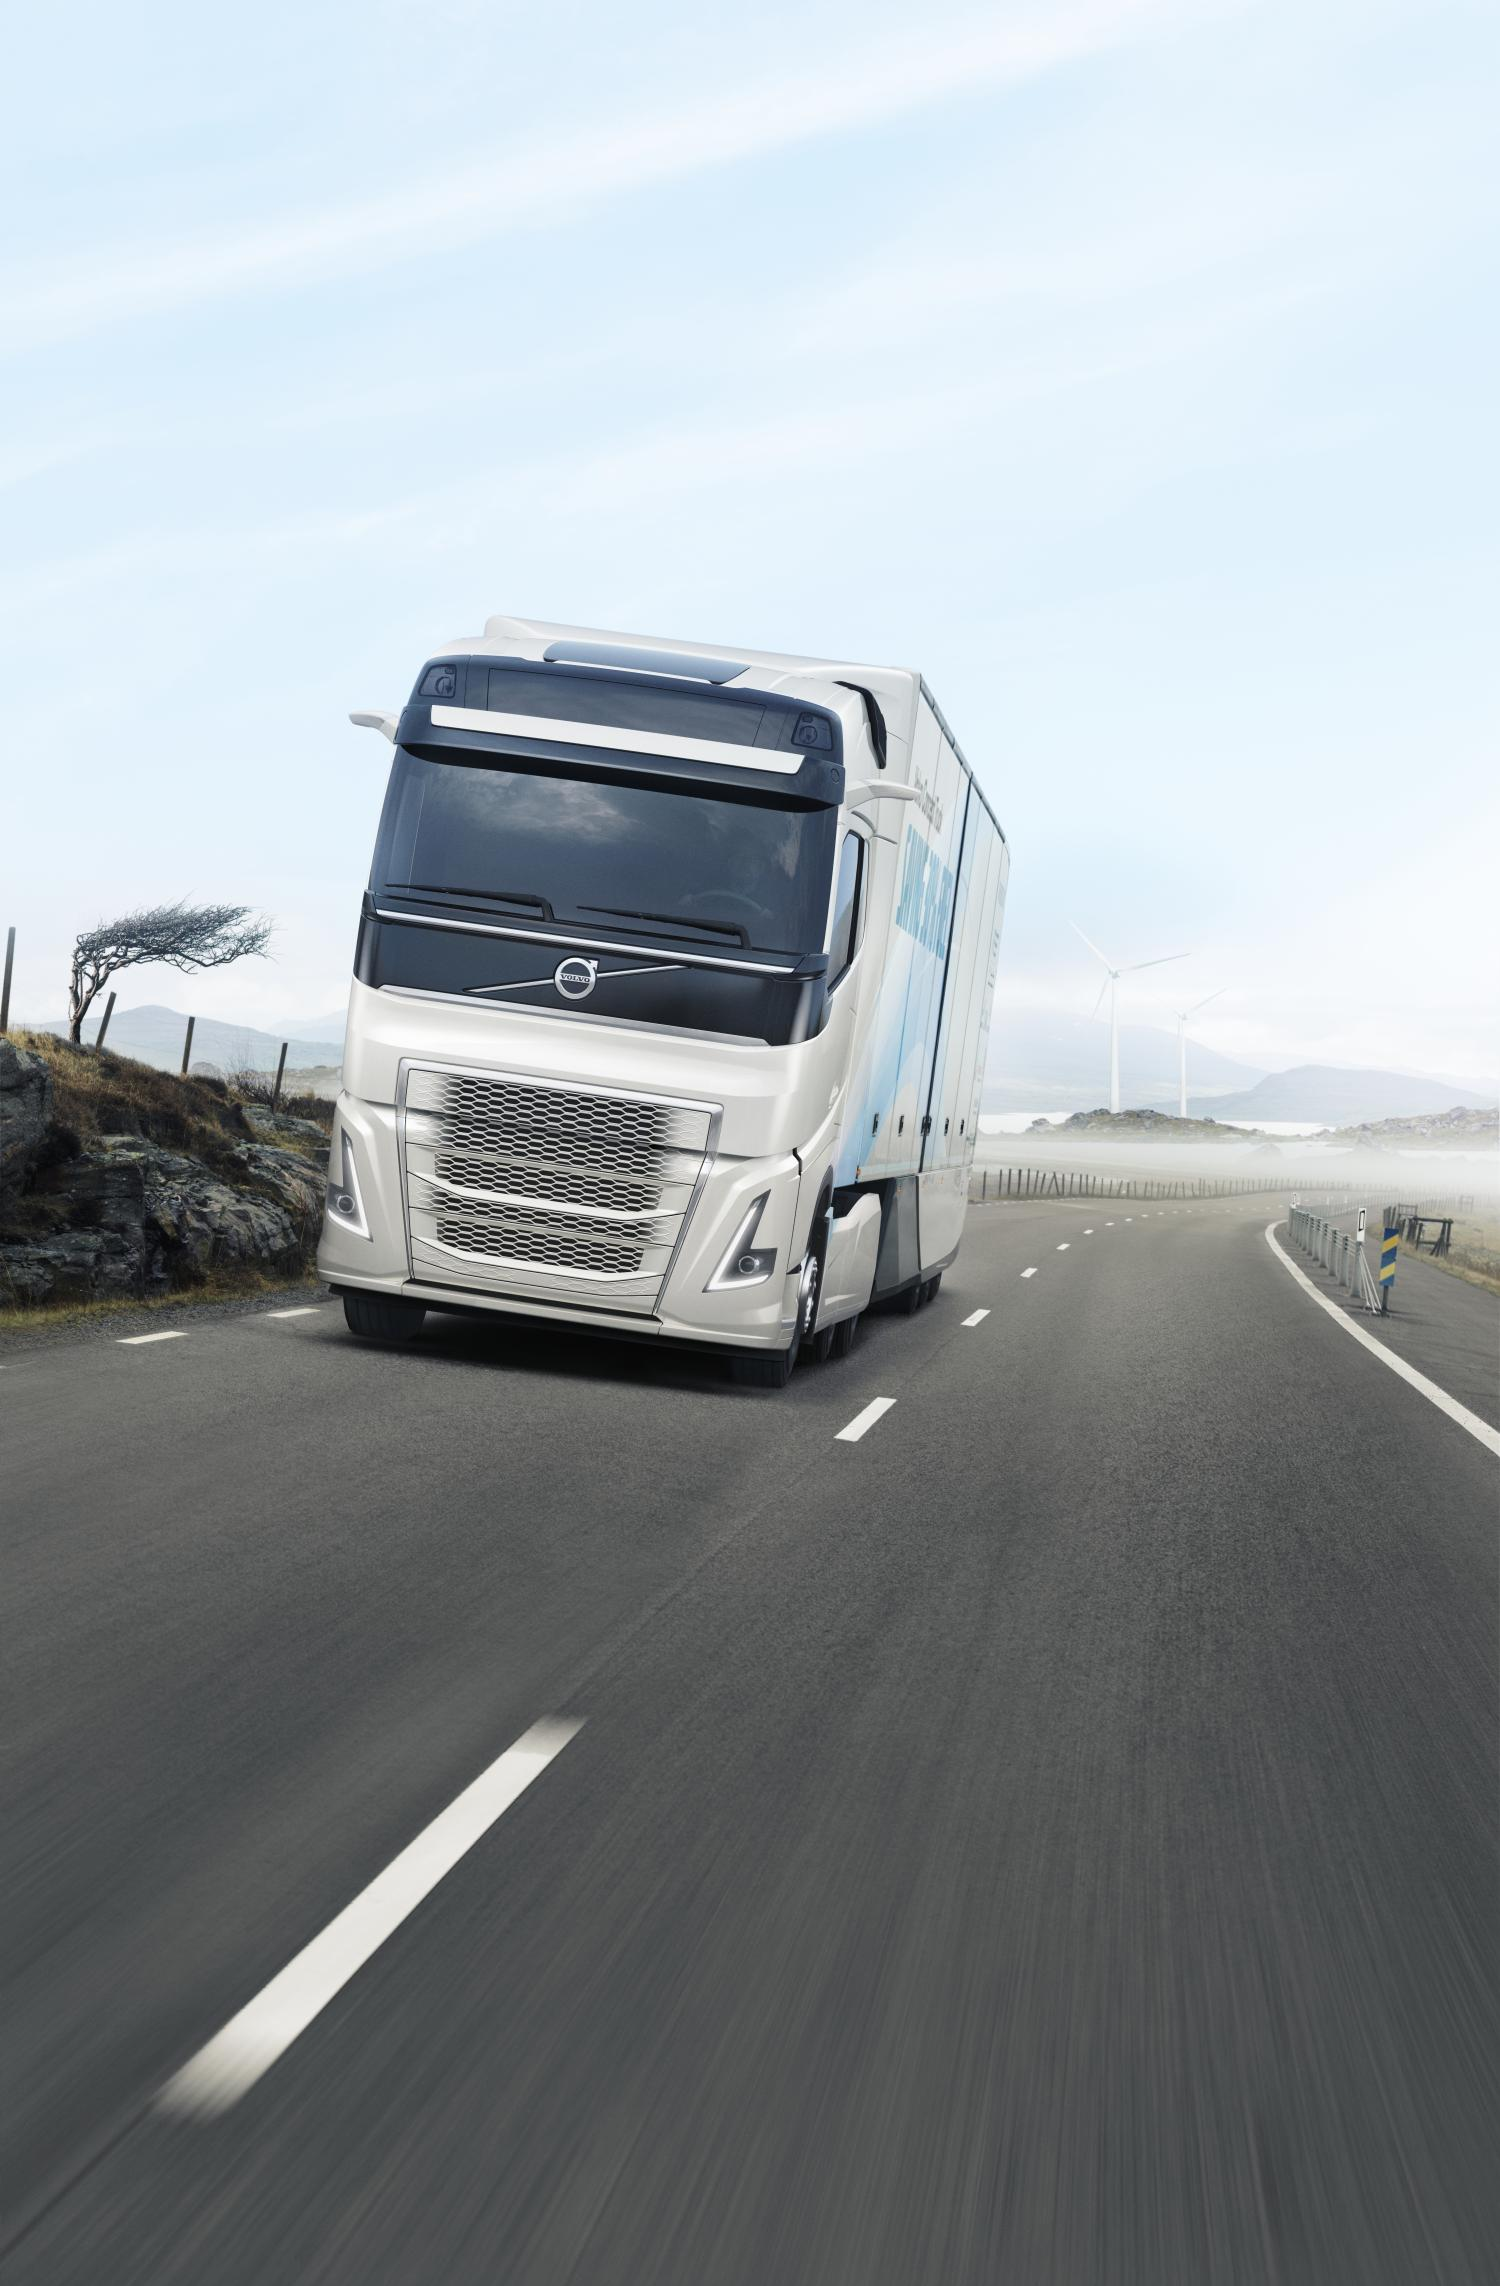 Volvo Trucks' New Concept Truck Cuts Fuel Consumption By